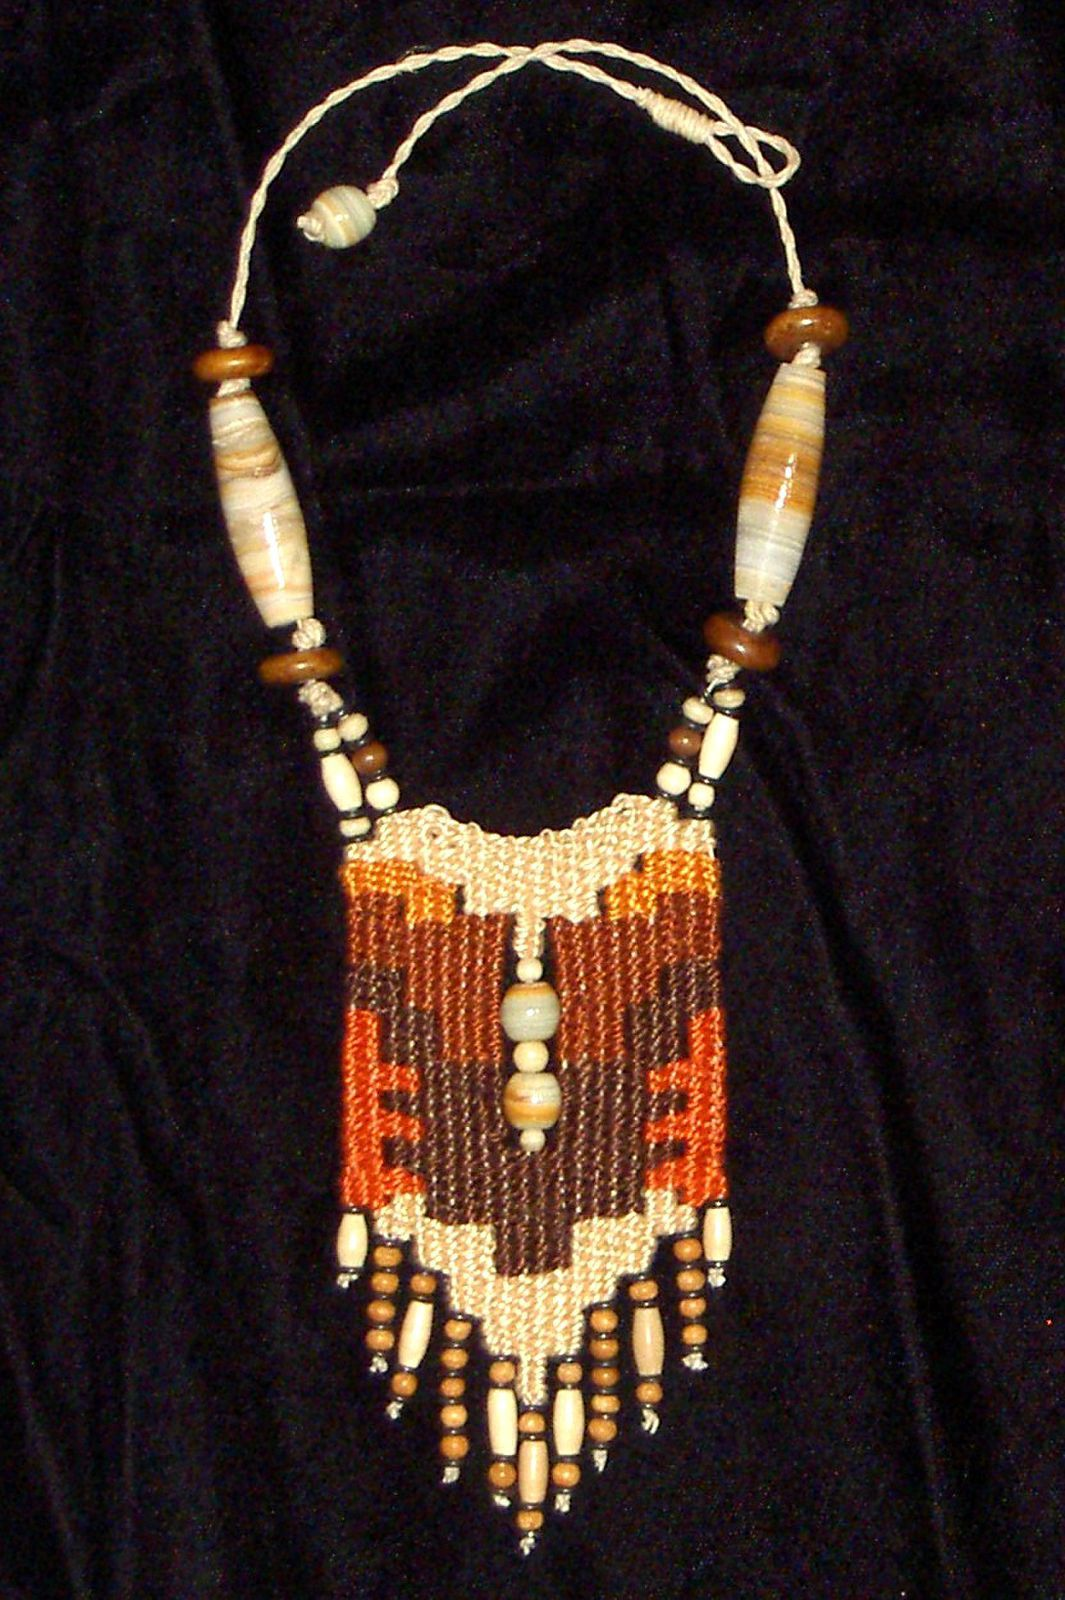 The Raven's Cache, Gallery of Woven Necklaces